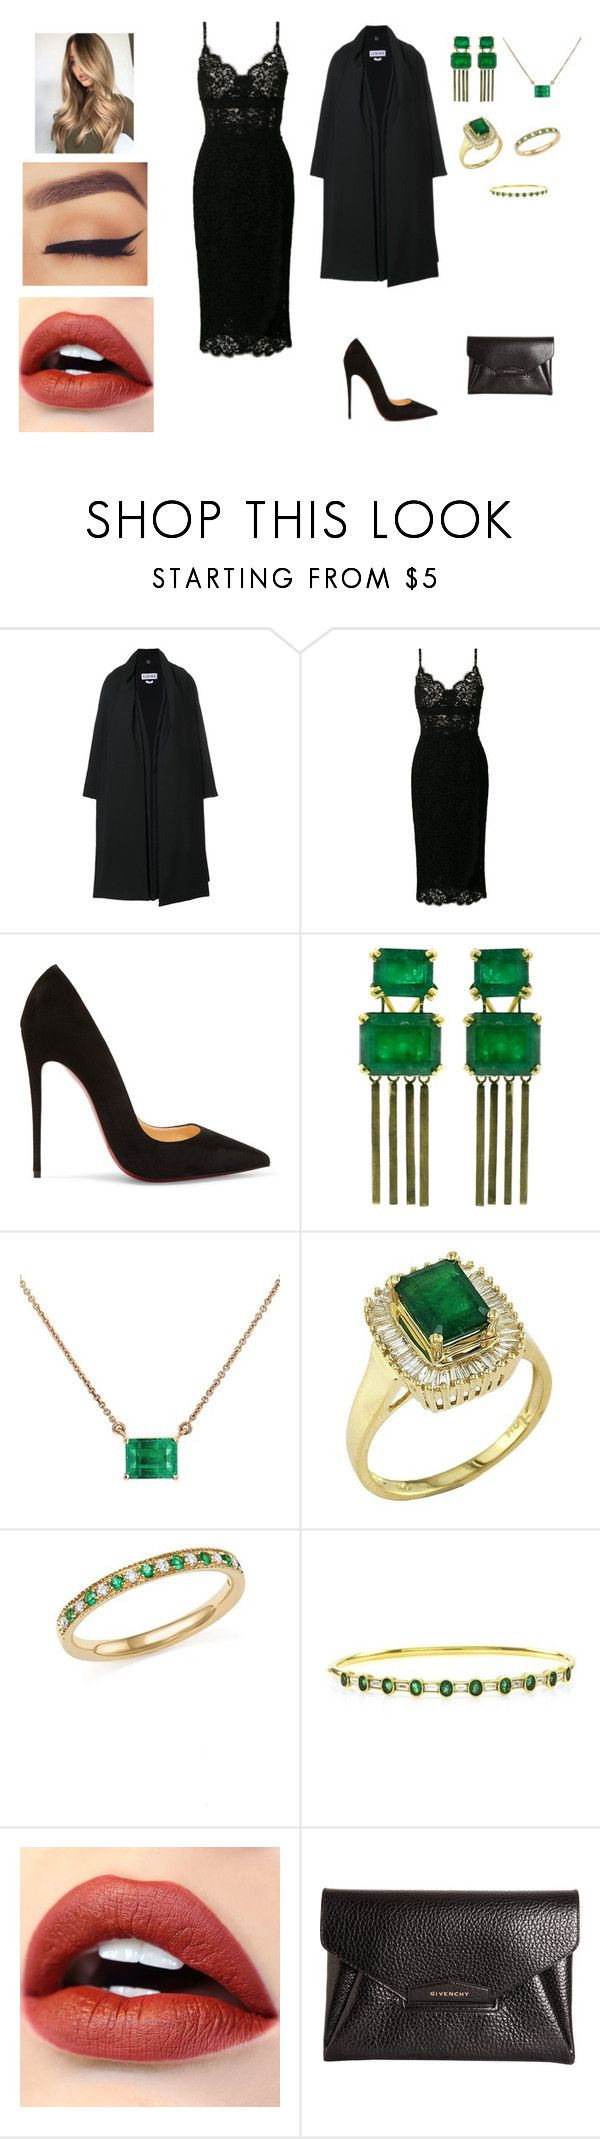 """""""Untitled #1565"""" by sporteousgregory ❤ liked on Polyvore featuring Loewe, Dolce&Gabbana, Christian Louboutin, Sylva & Cie, Effy Jewelry, Bloomingdale's and Givenchy"""